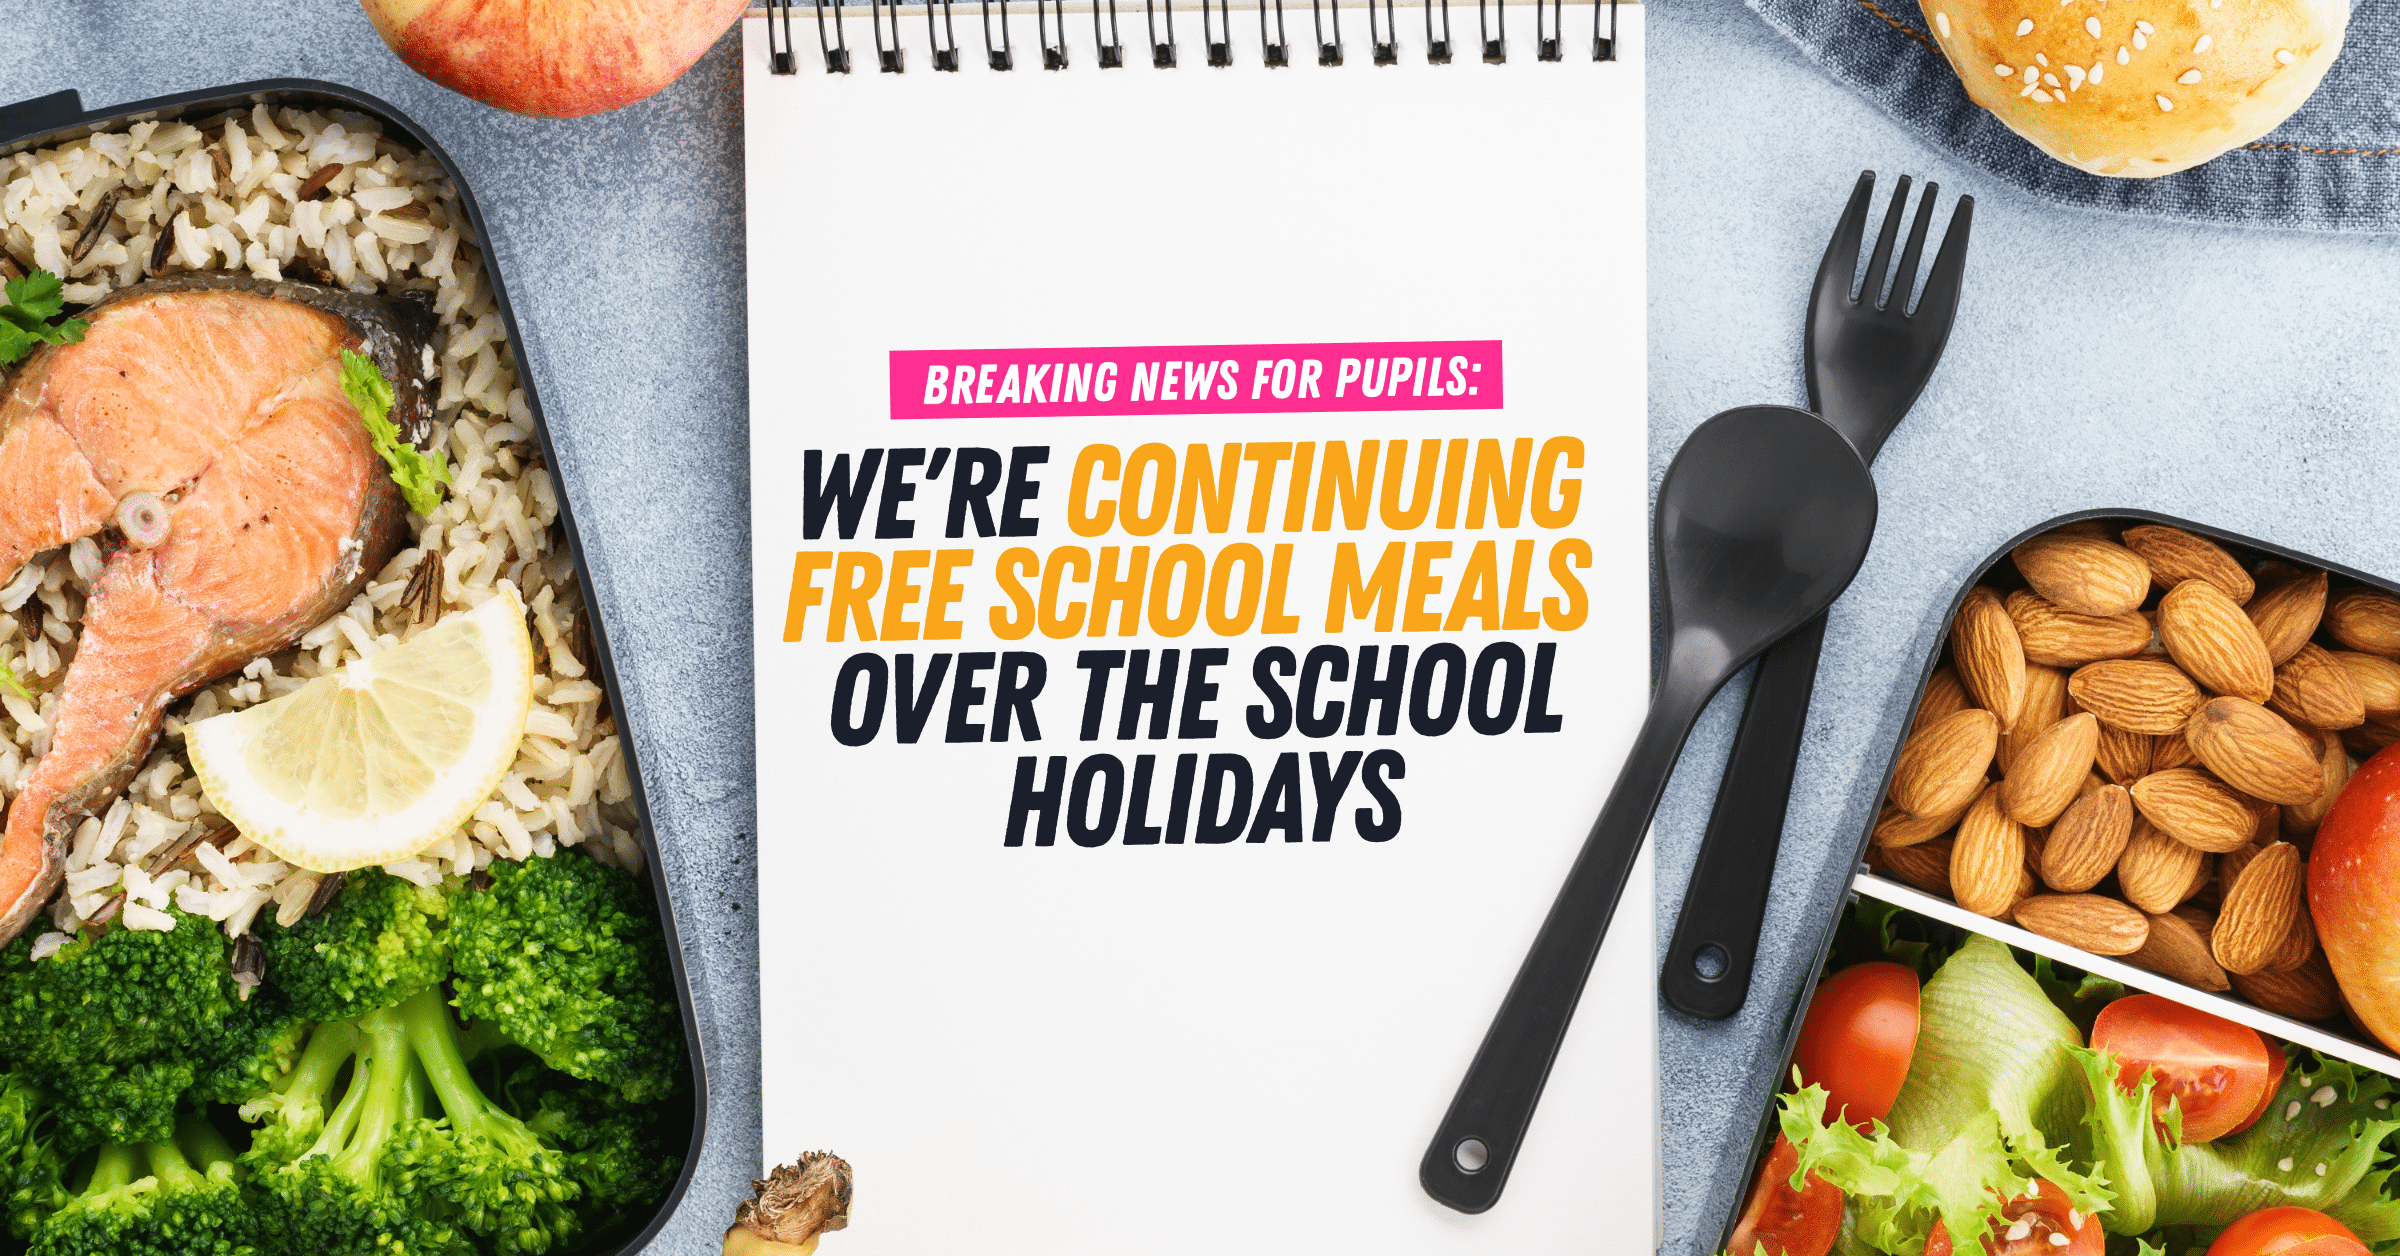 Kirsty Williams delivers Free School Meals over School Holidays